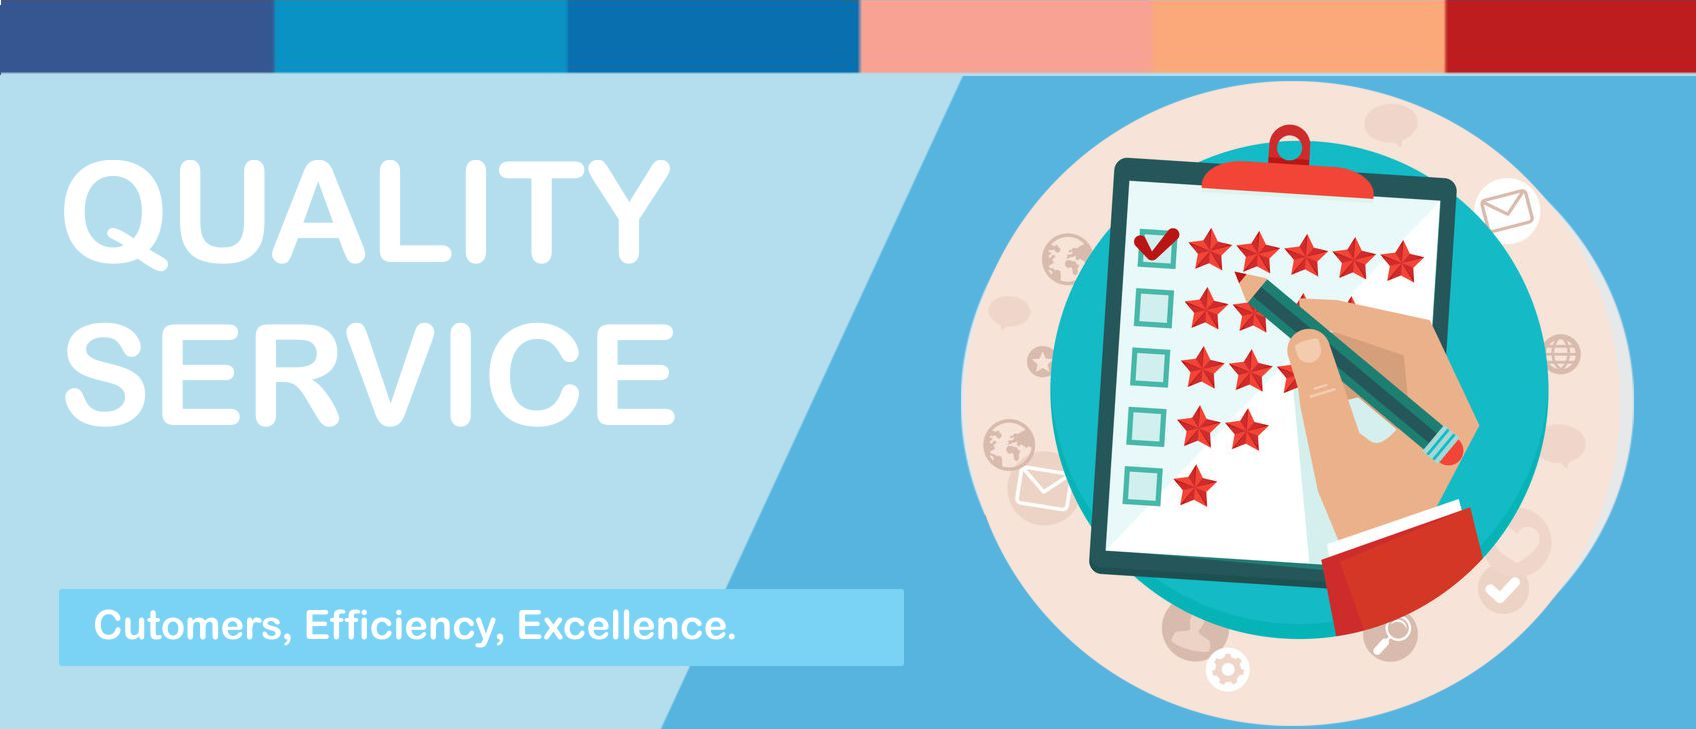 Managing a Quality Service Competency Example